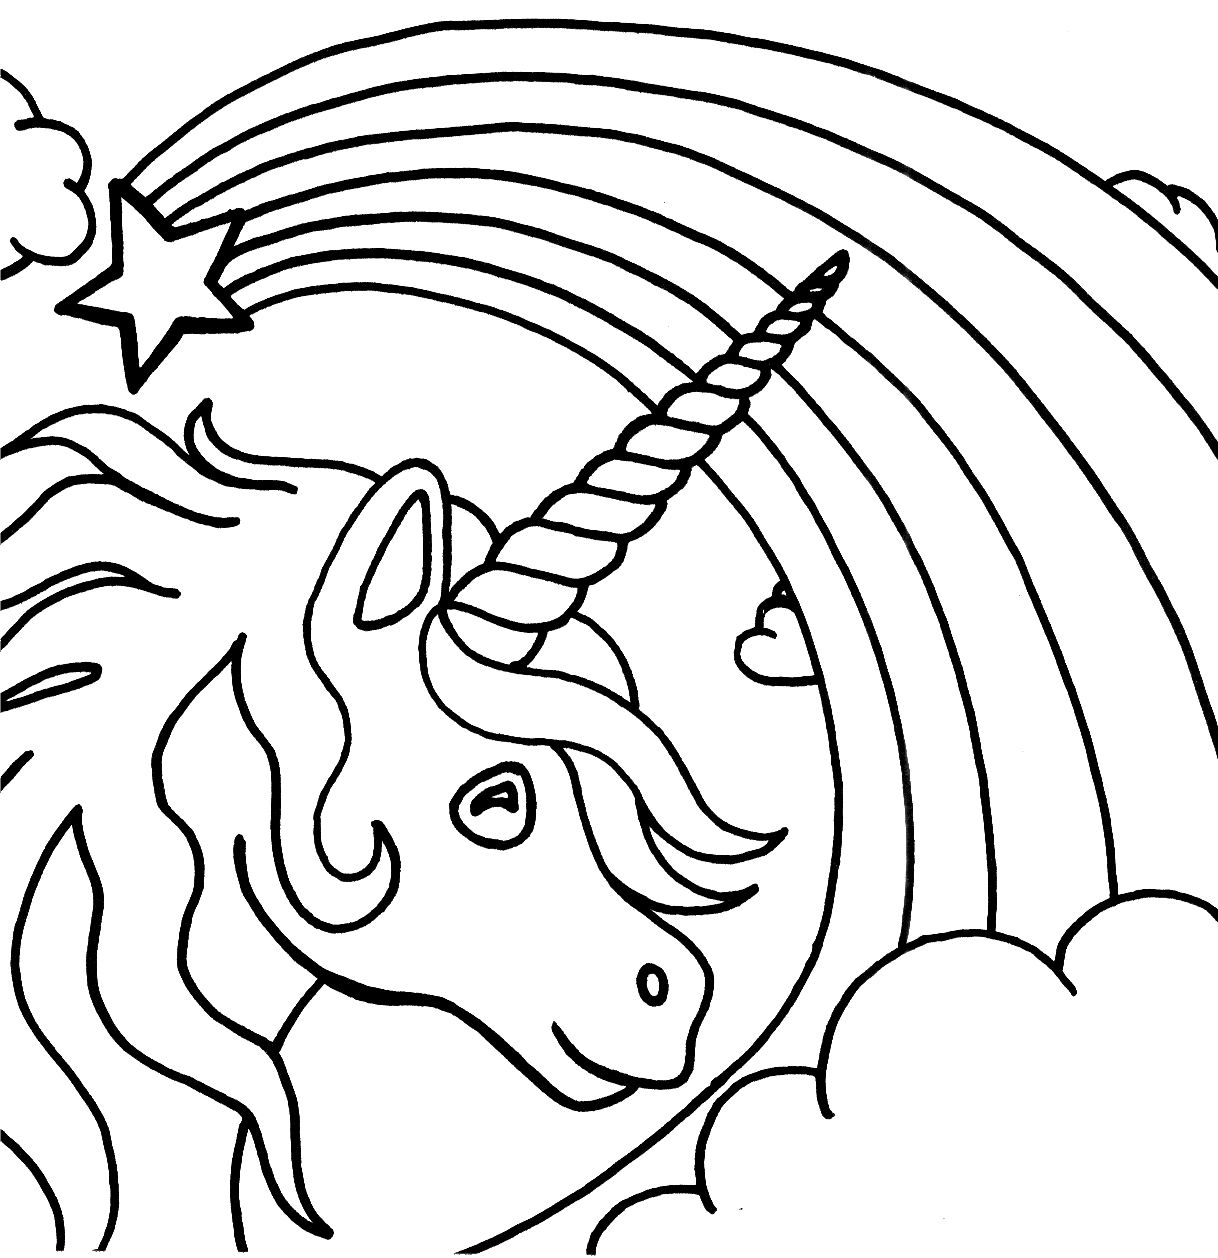 easy coloring pages of unicorns to print unicorn coloring pages for kids print and color the pictures mamaws lovely ideas pinterest kids prints